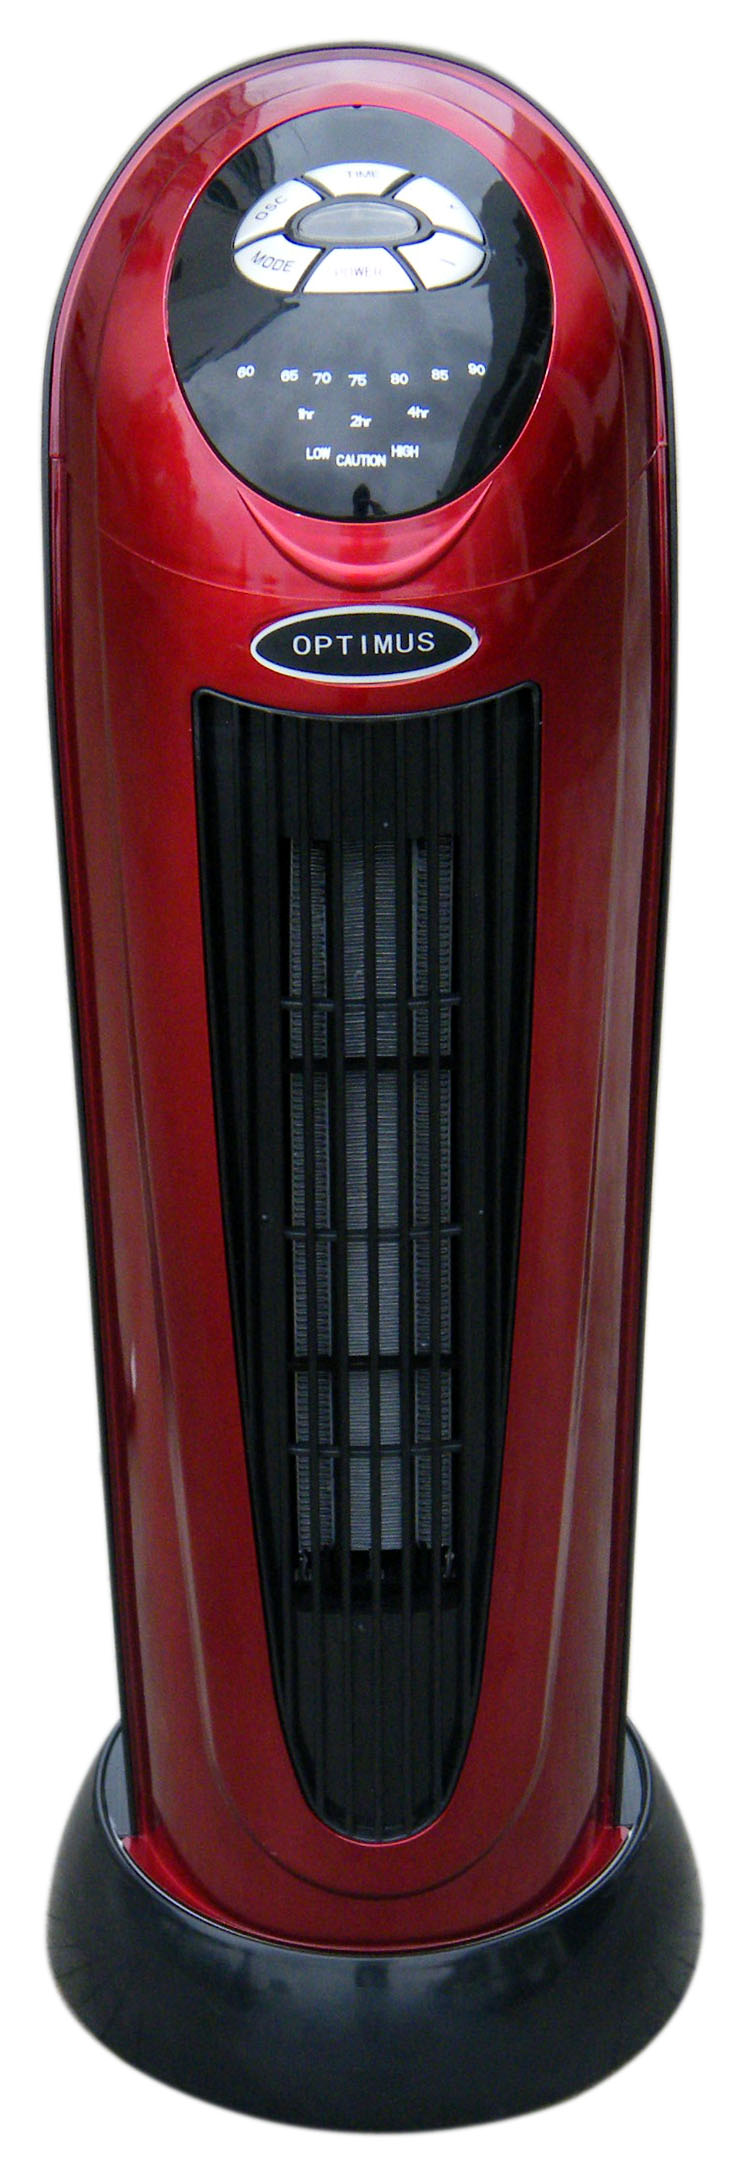 "Optimus 22"" Oscillating Tower Heater with Digital Temp Readout & Setting, Remote"